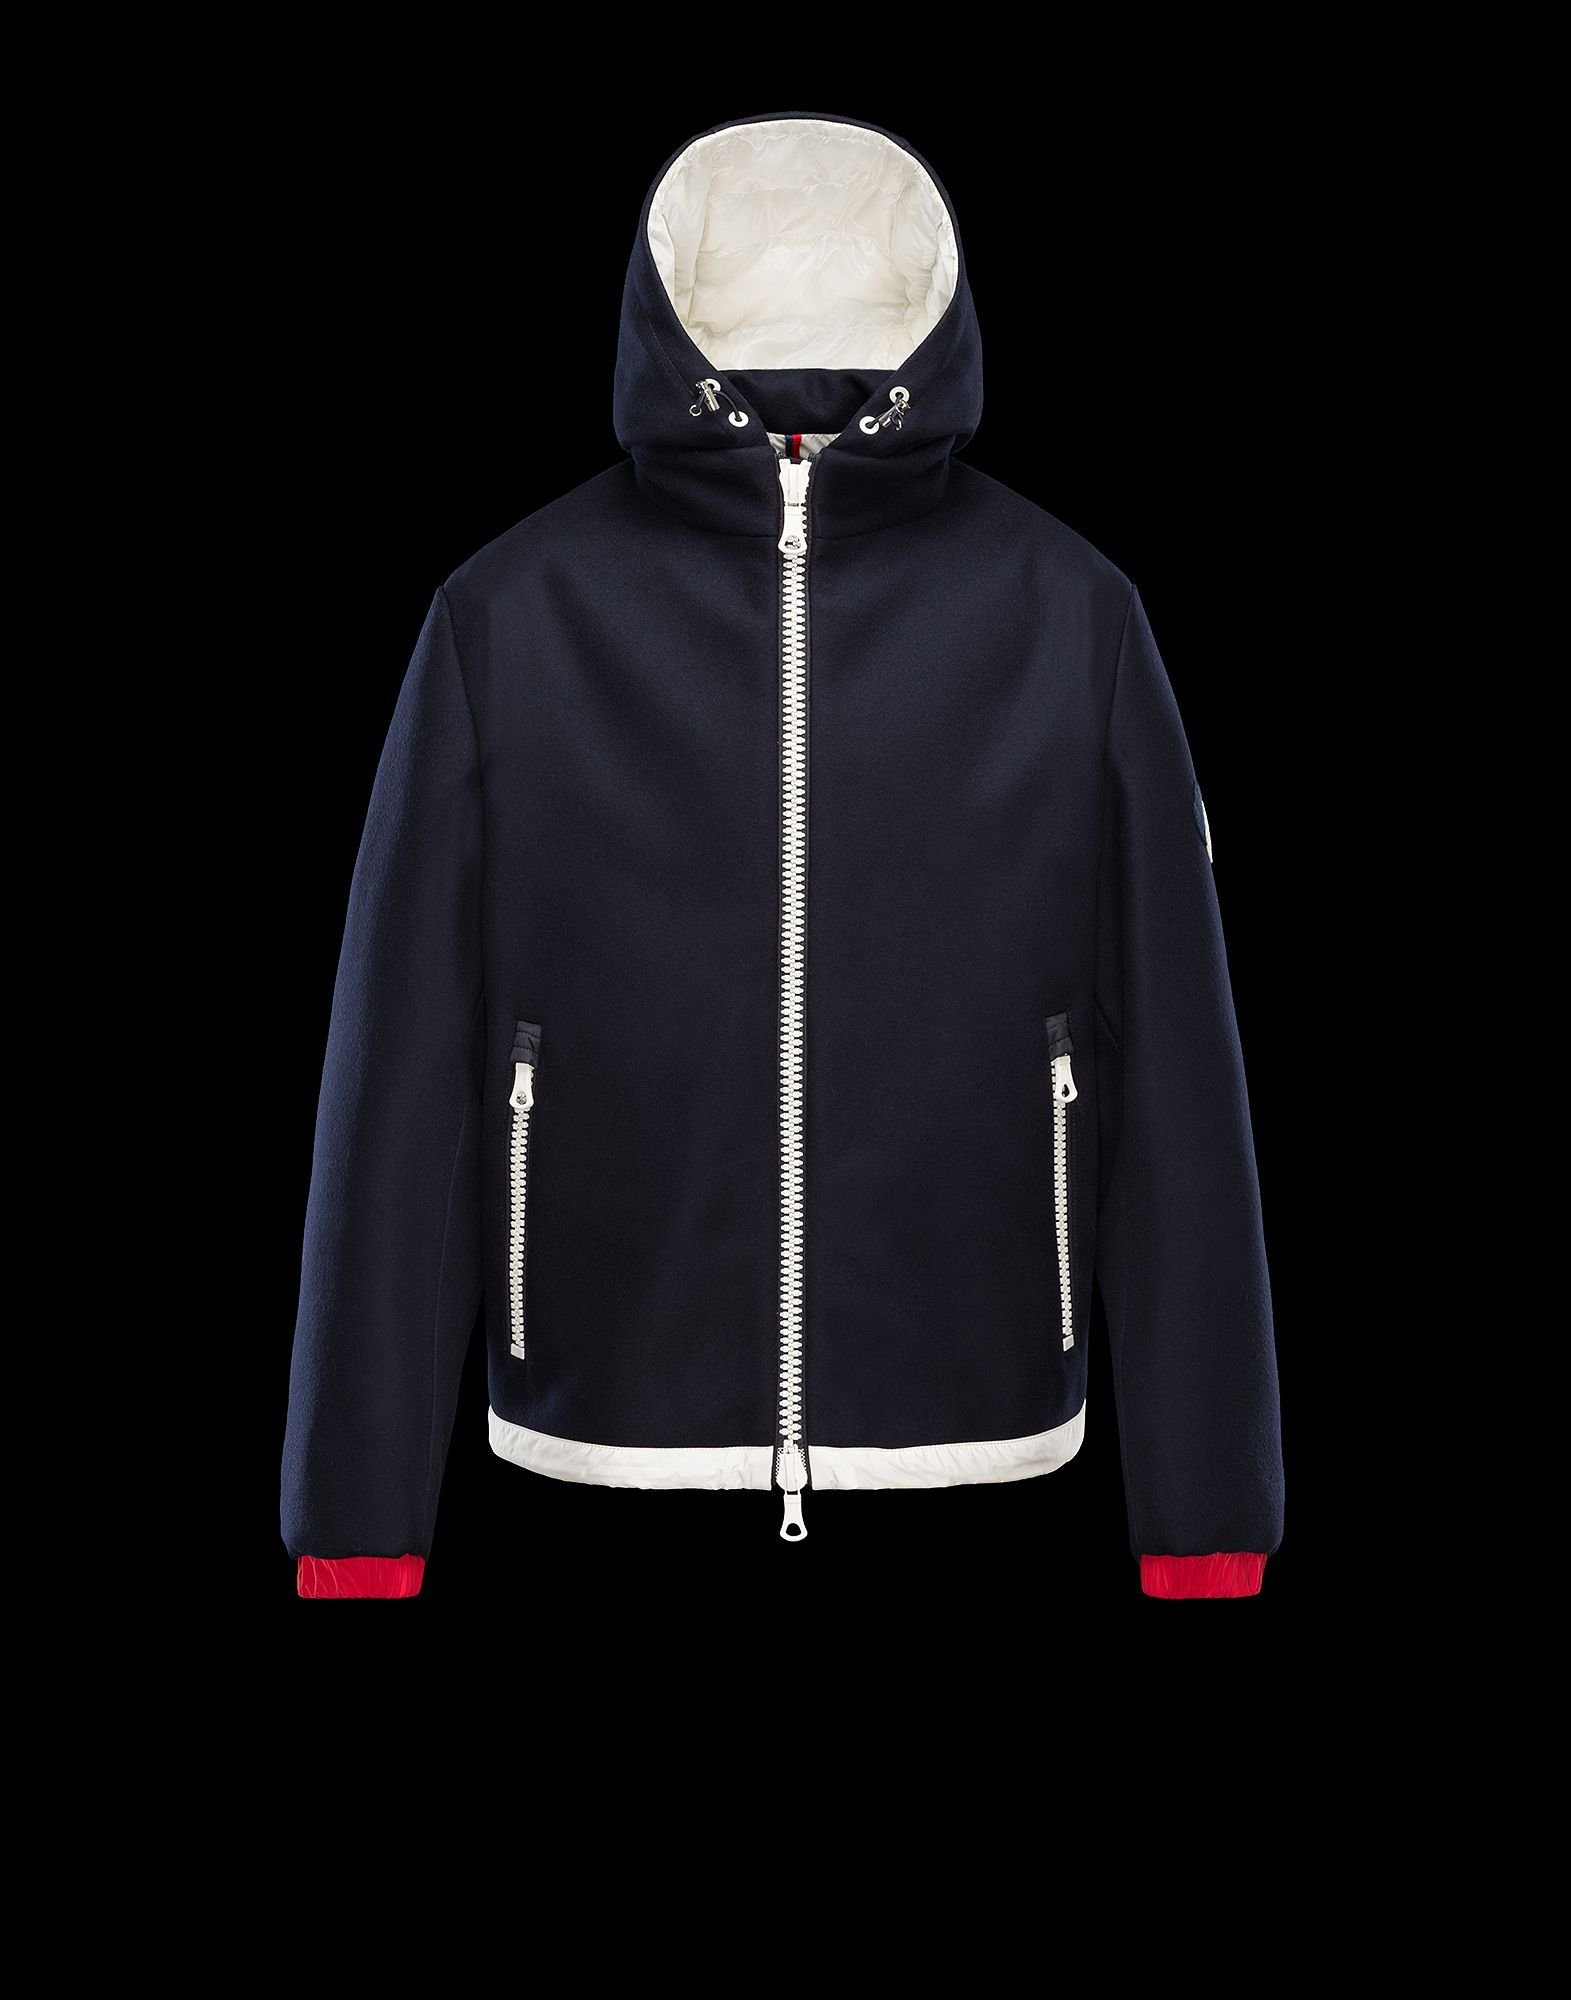 0d755997 2016 A/W £875 Moncler, Official Store, Hoodies, Sweaters, Men